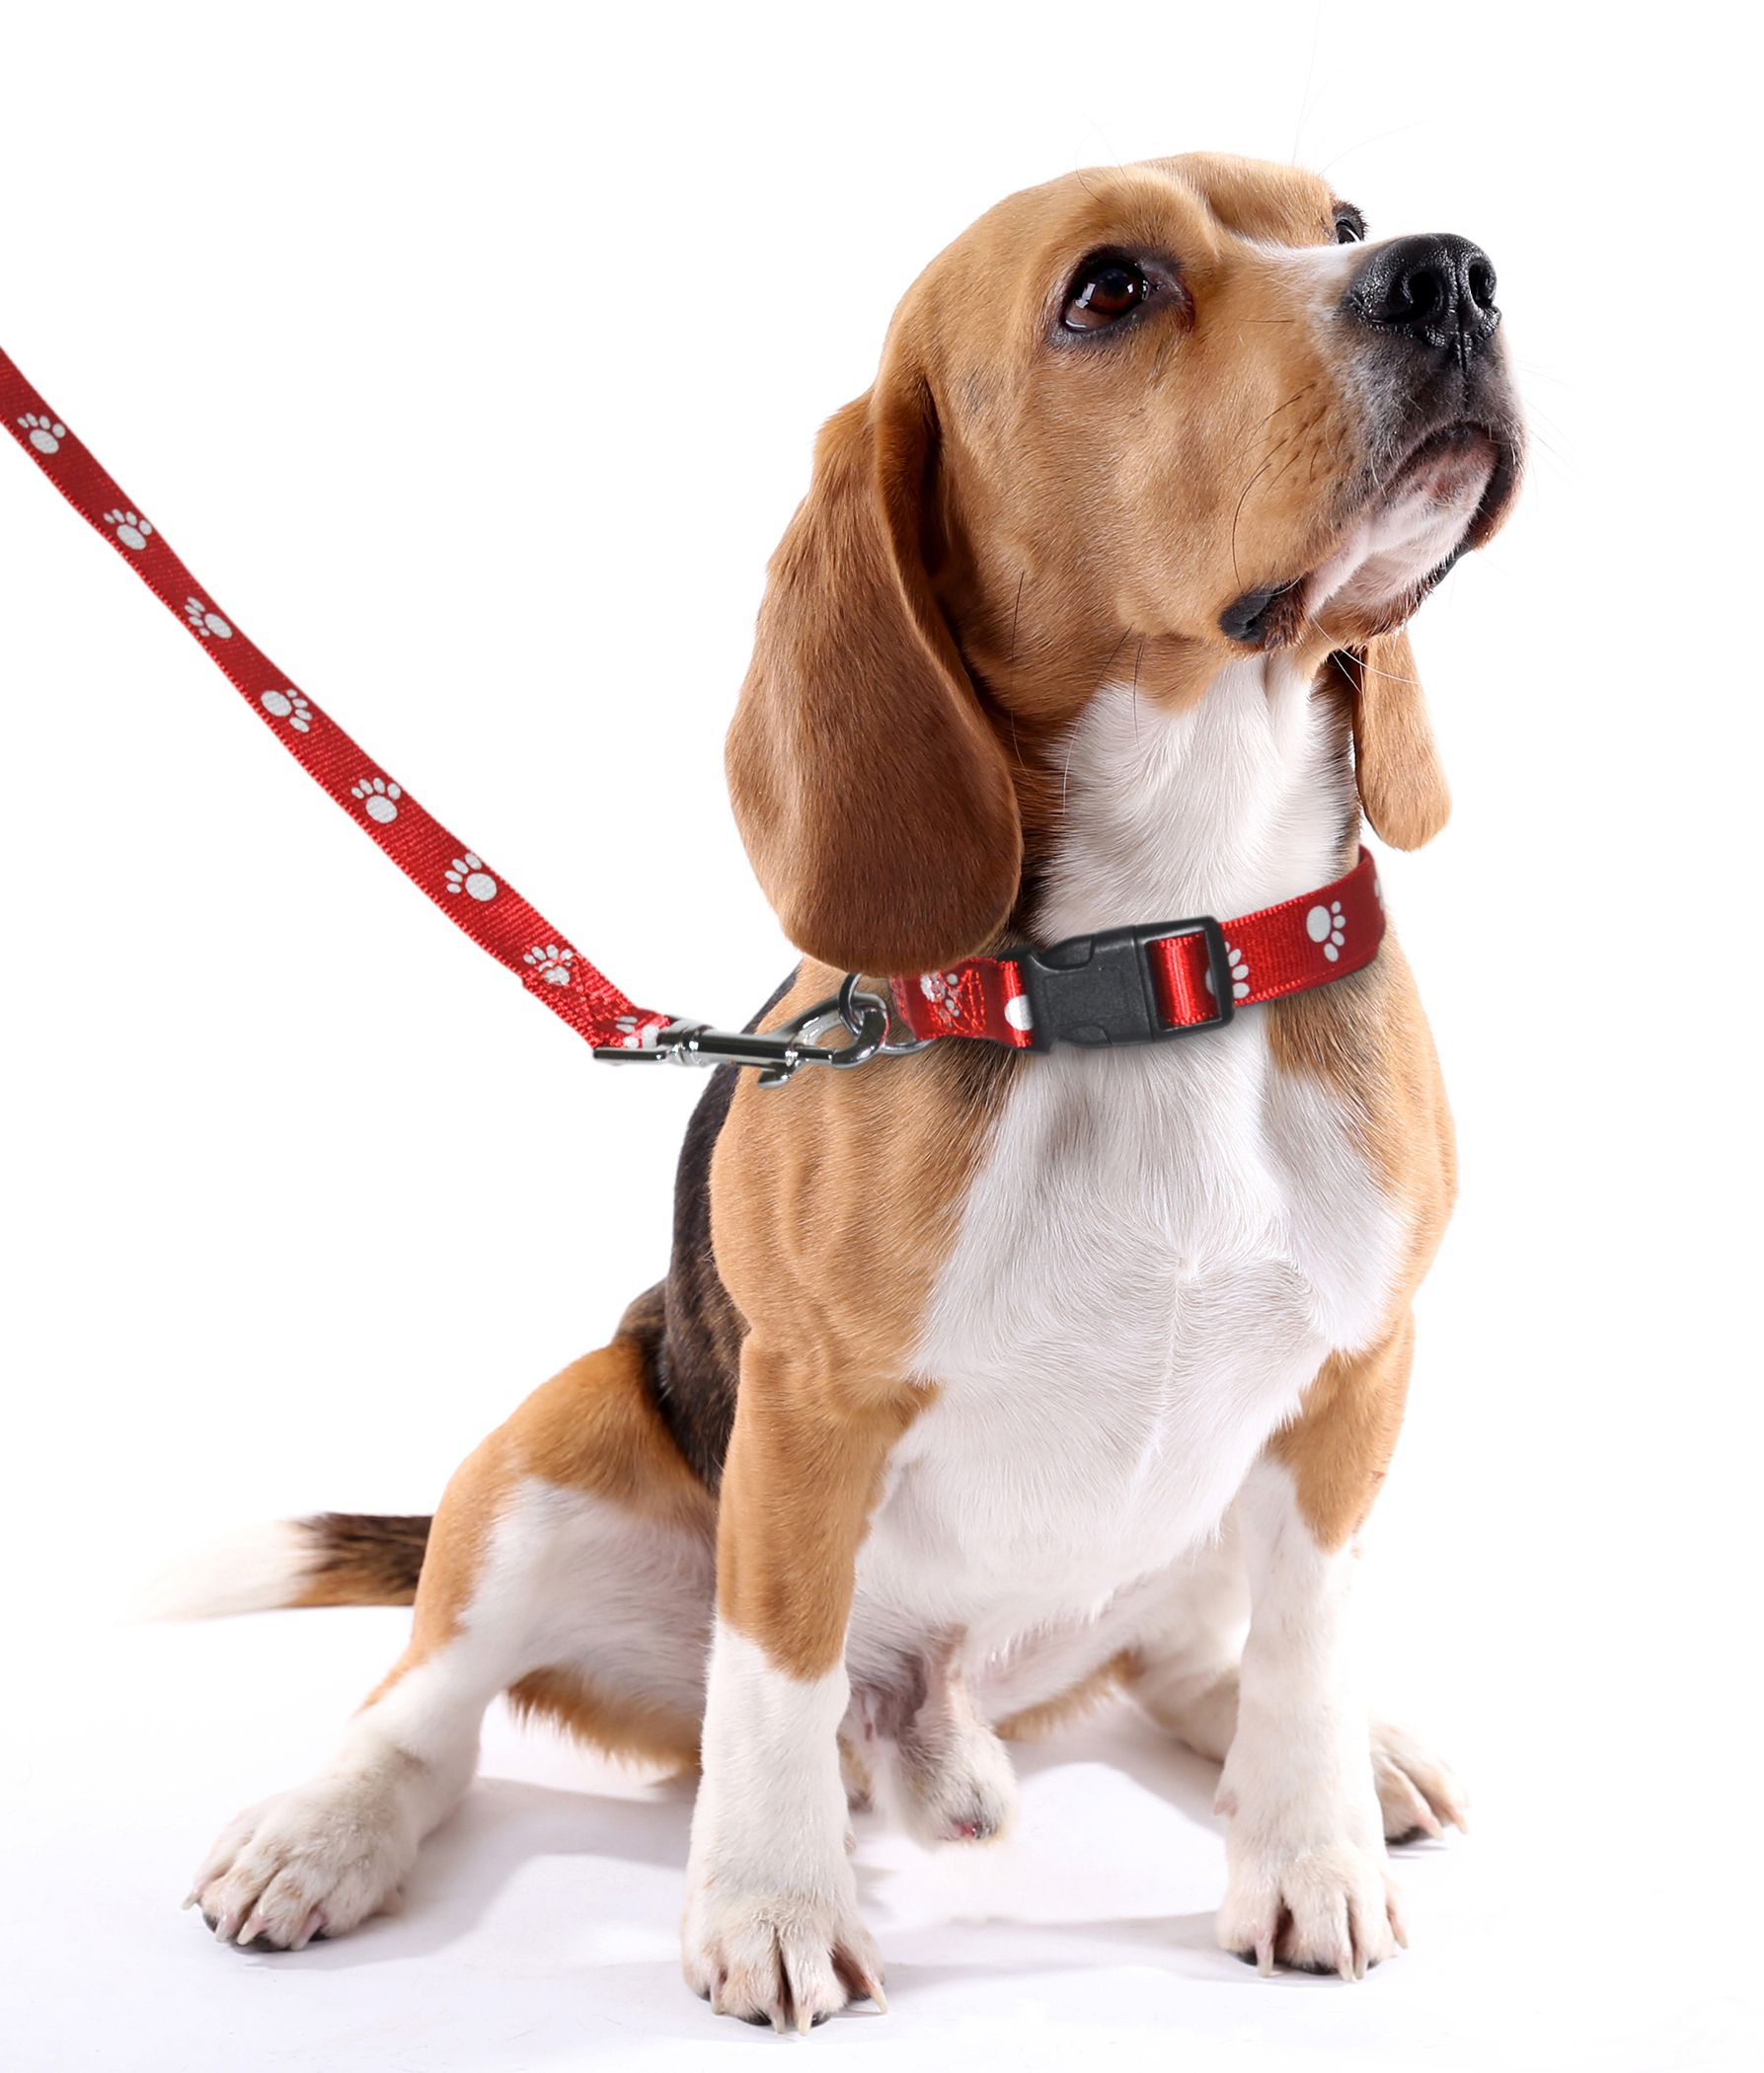 Collar and leash set 2 day sale 623 15 to 62715 grab